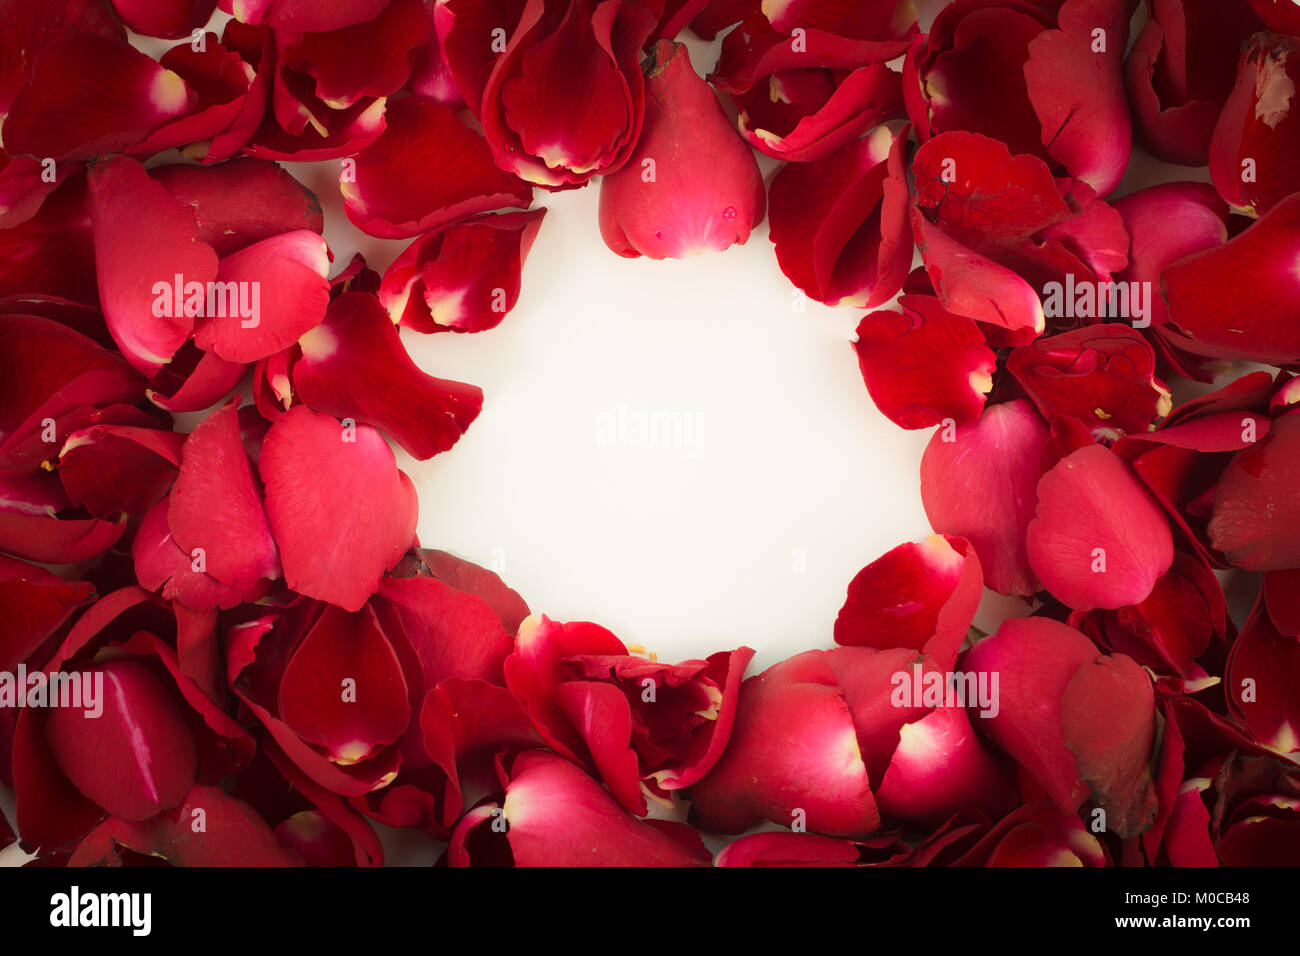 Greeting Card Red Rose Petals With Blank Message Sign For Your Text